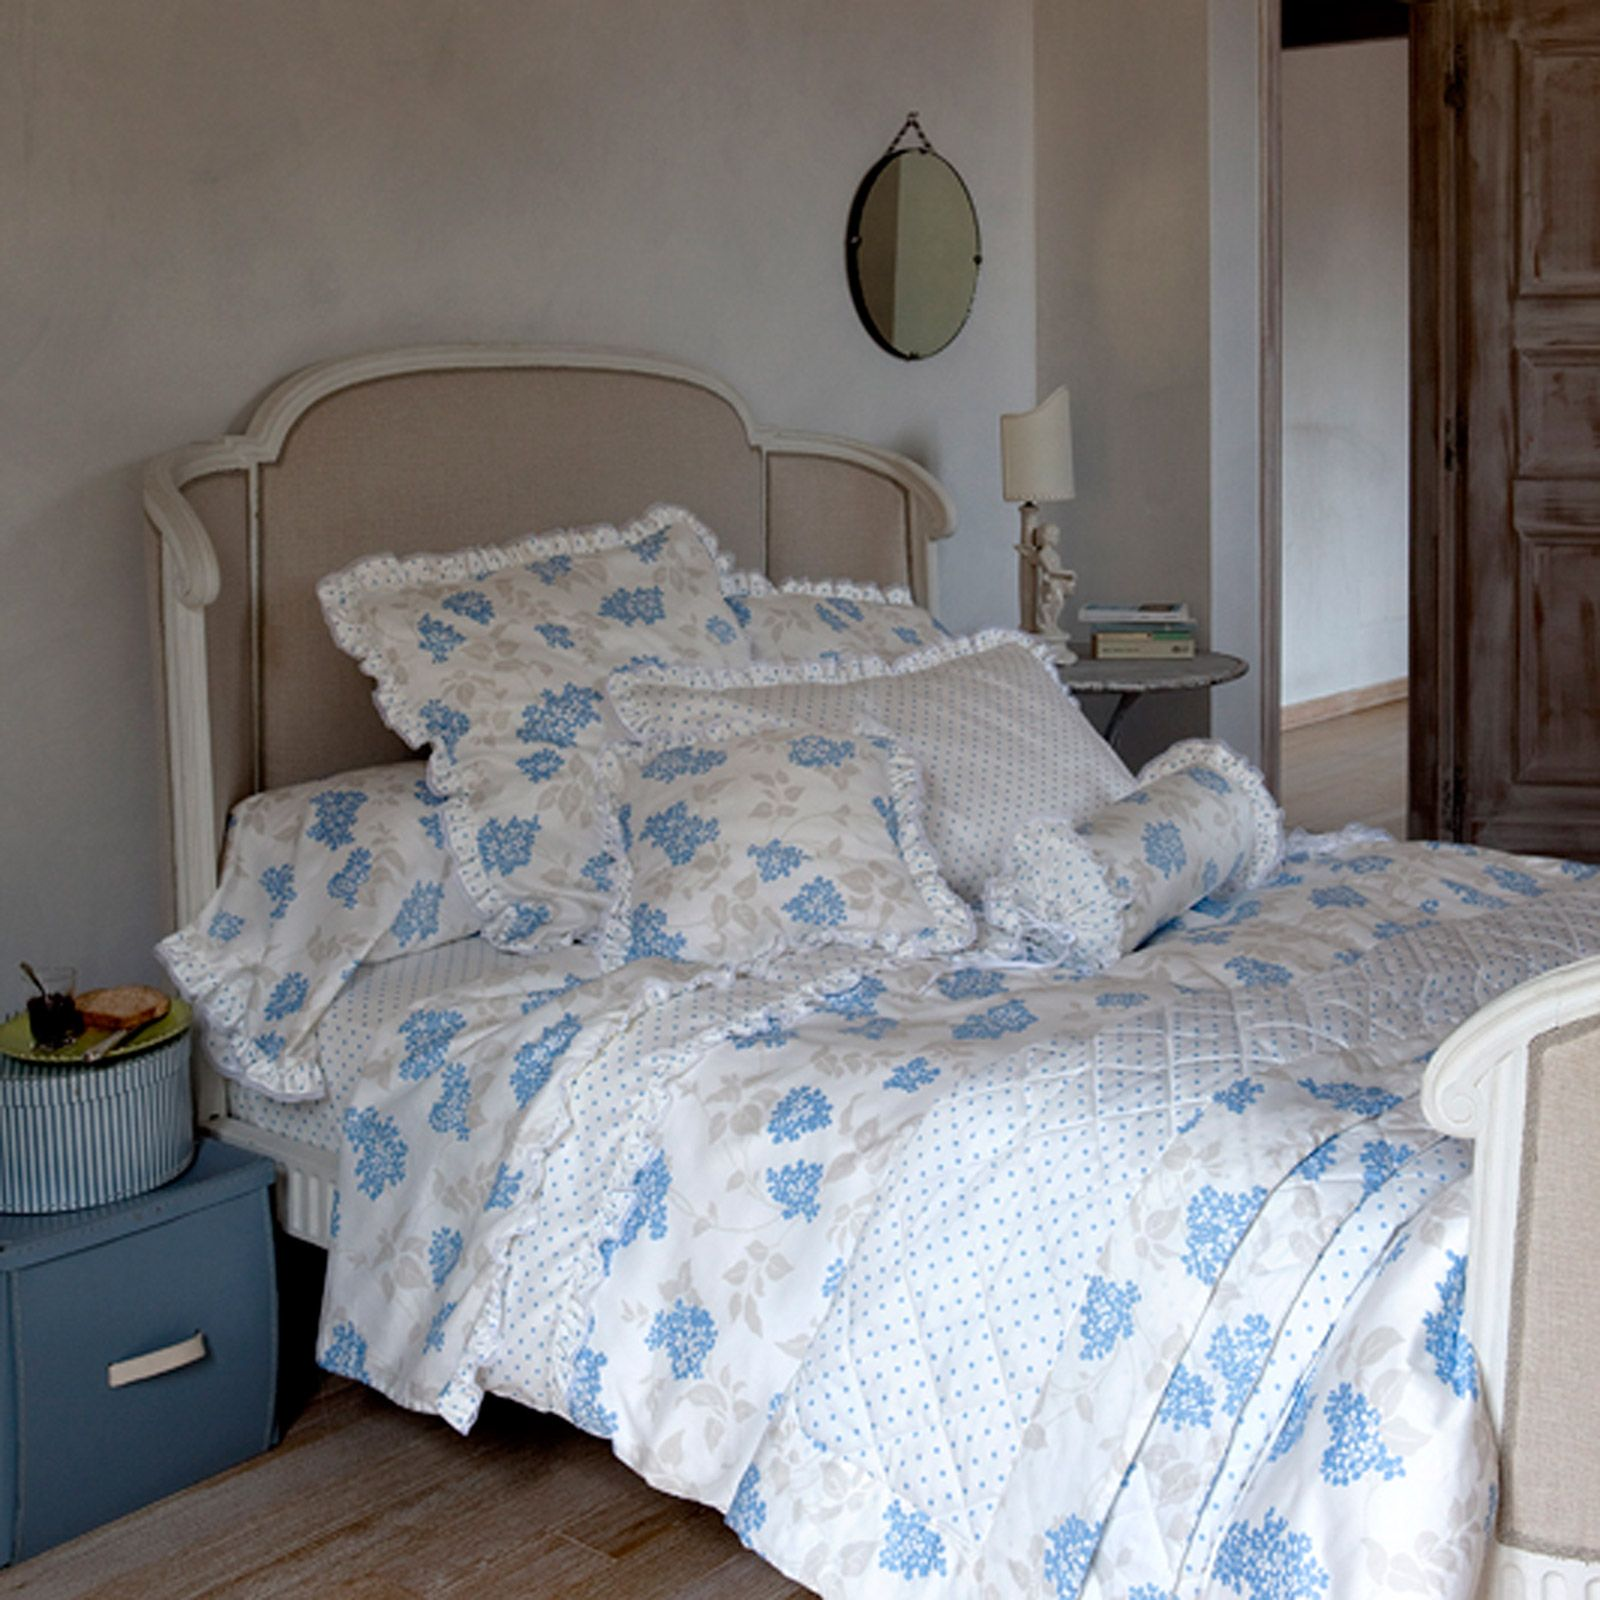 laura ashley bainbank housse de couette bleu brandalley ForHousse De Couette Laura Ashley